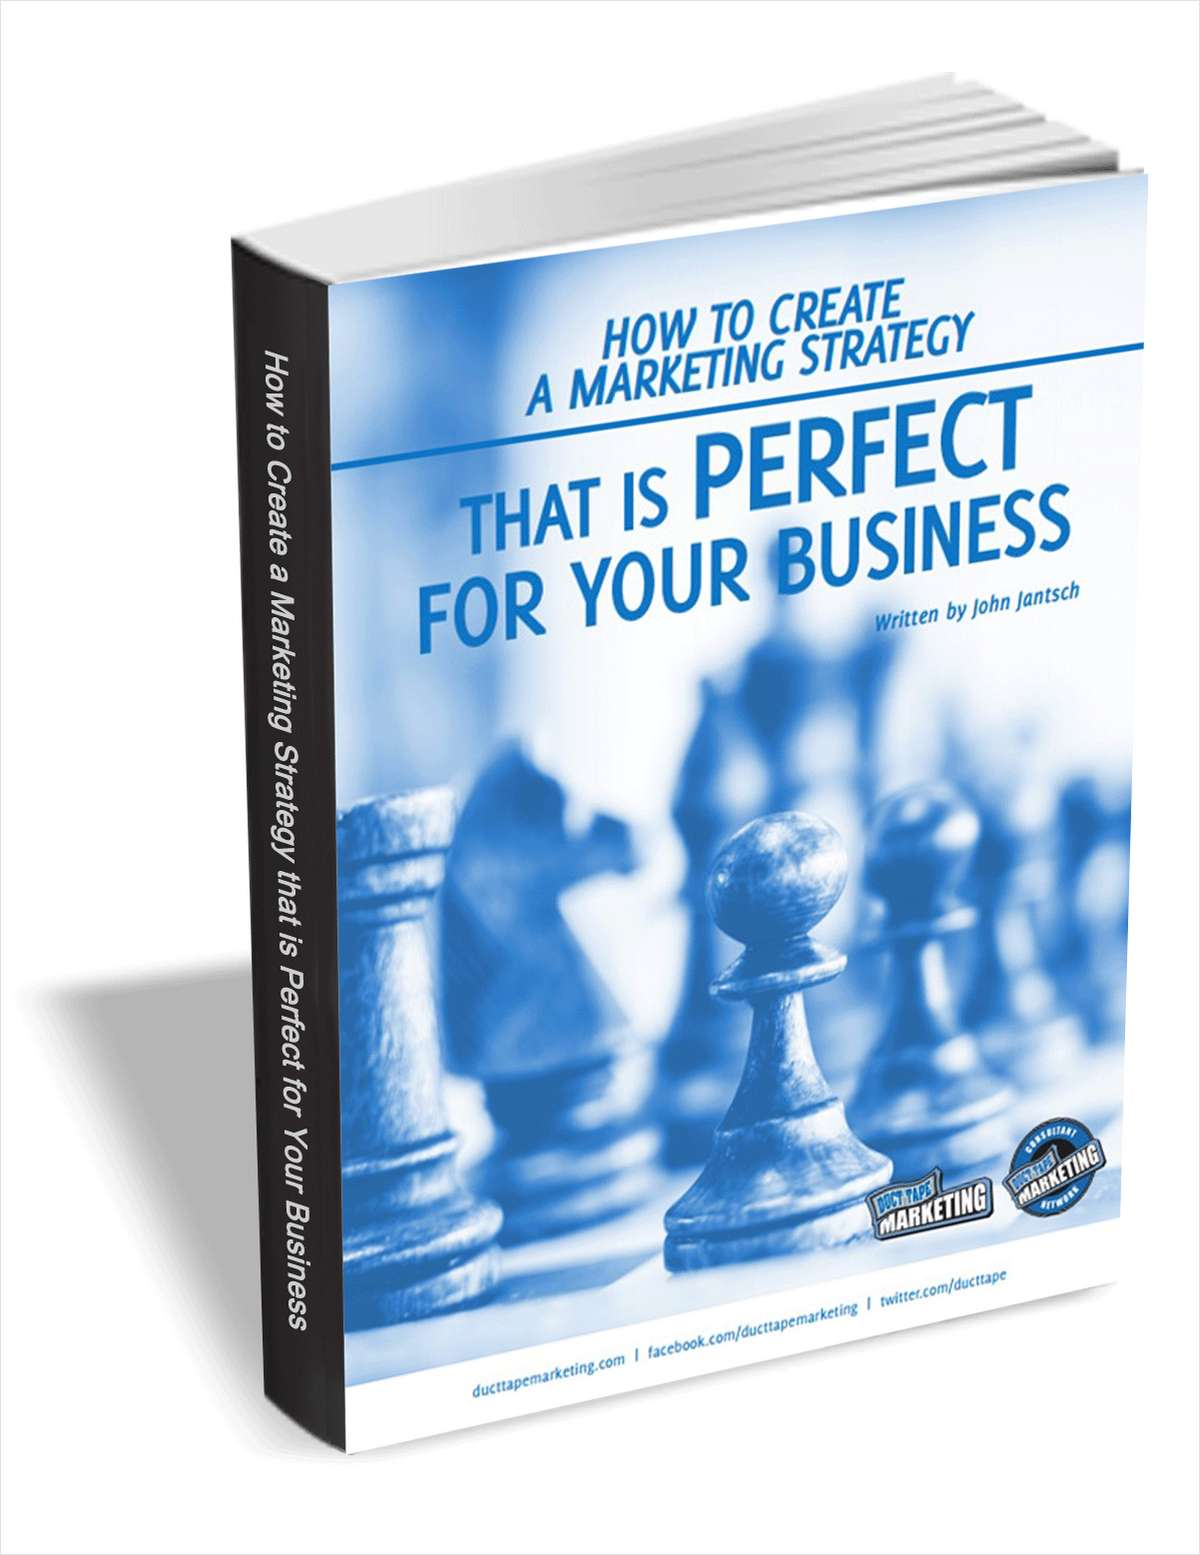 How to Create a Marketing Strategy that is Perfect for Your Business